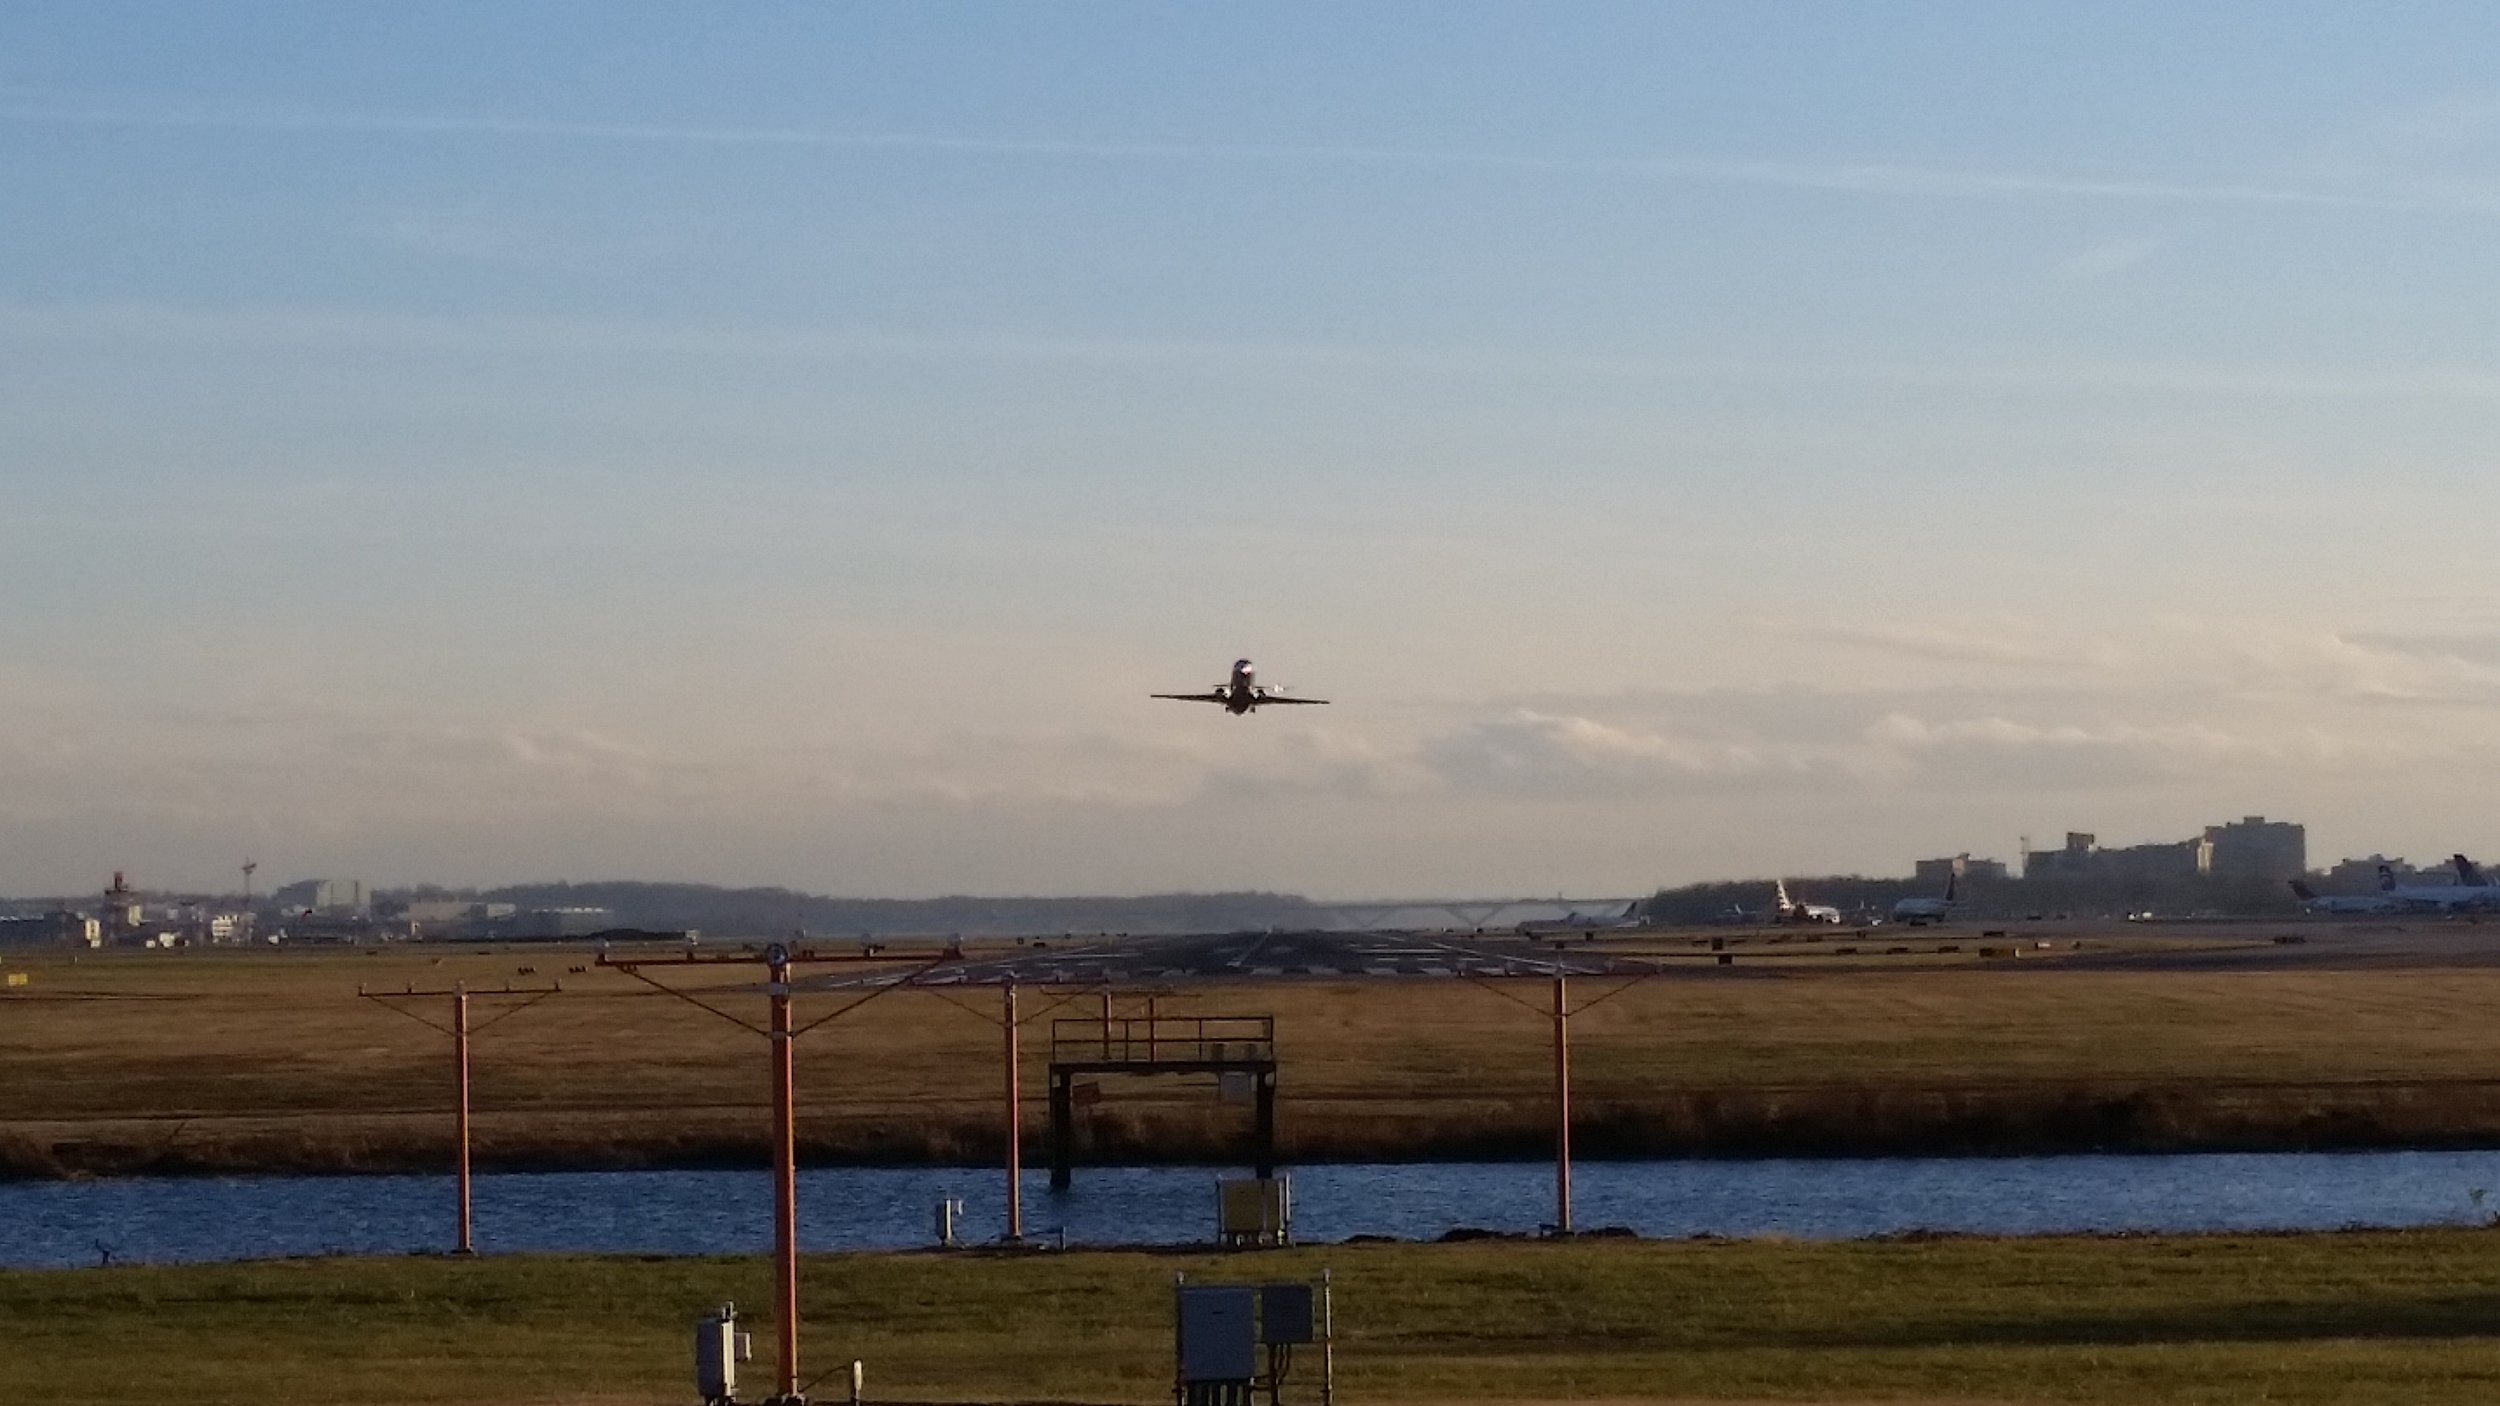 Take-off at Reagen National Airport